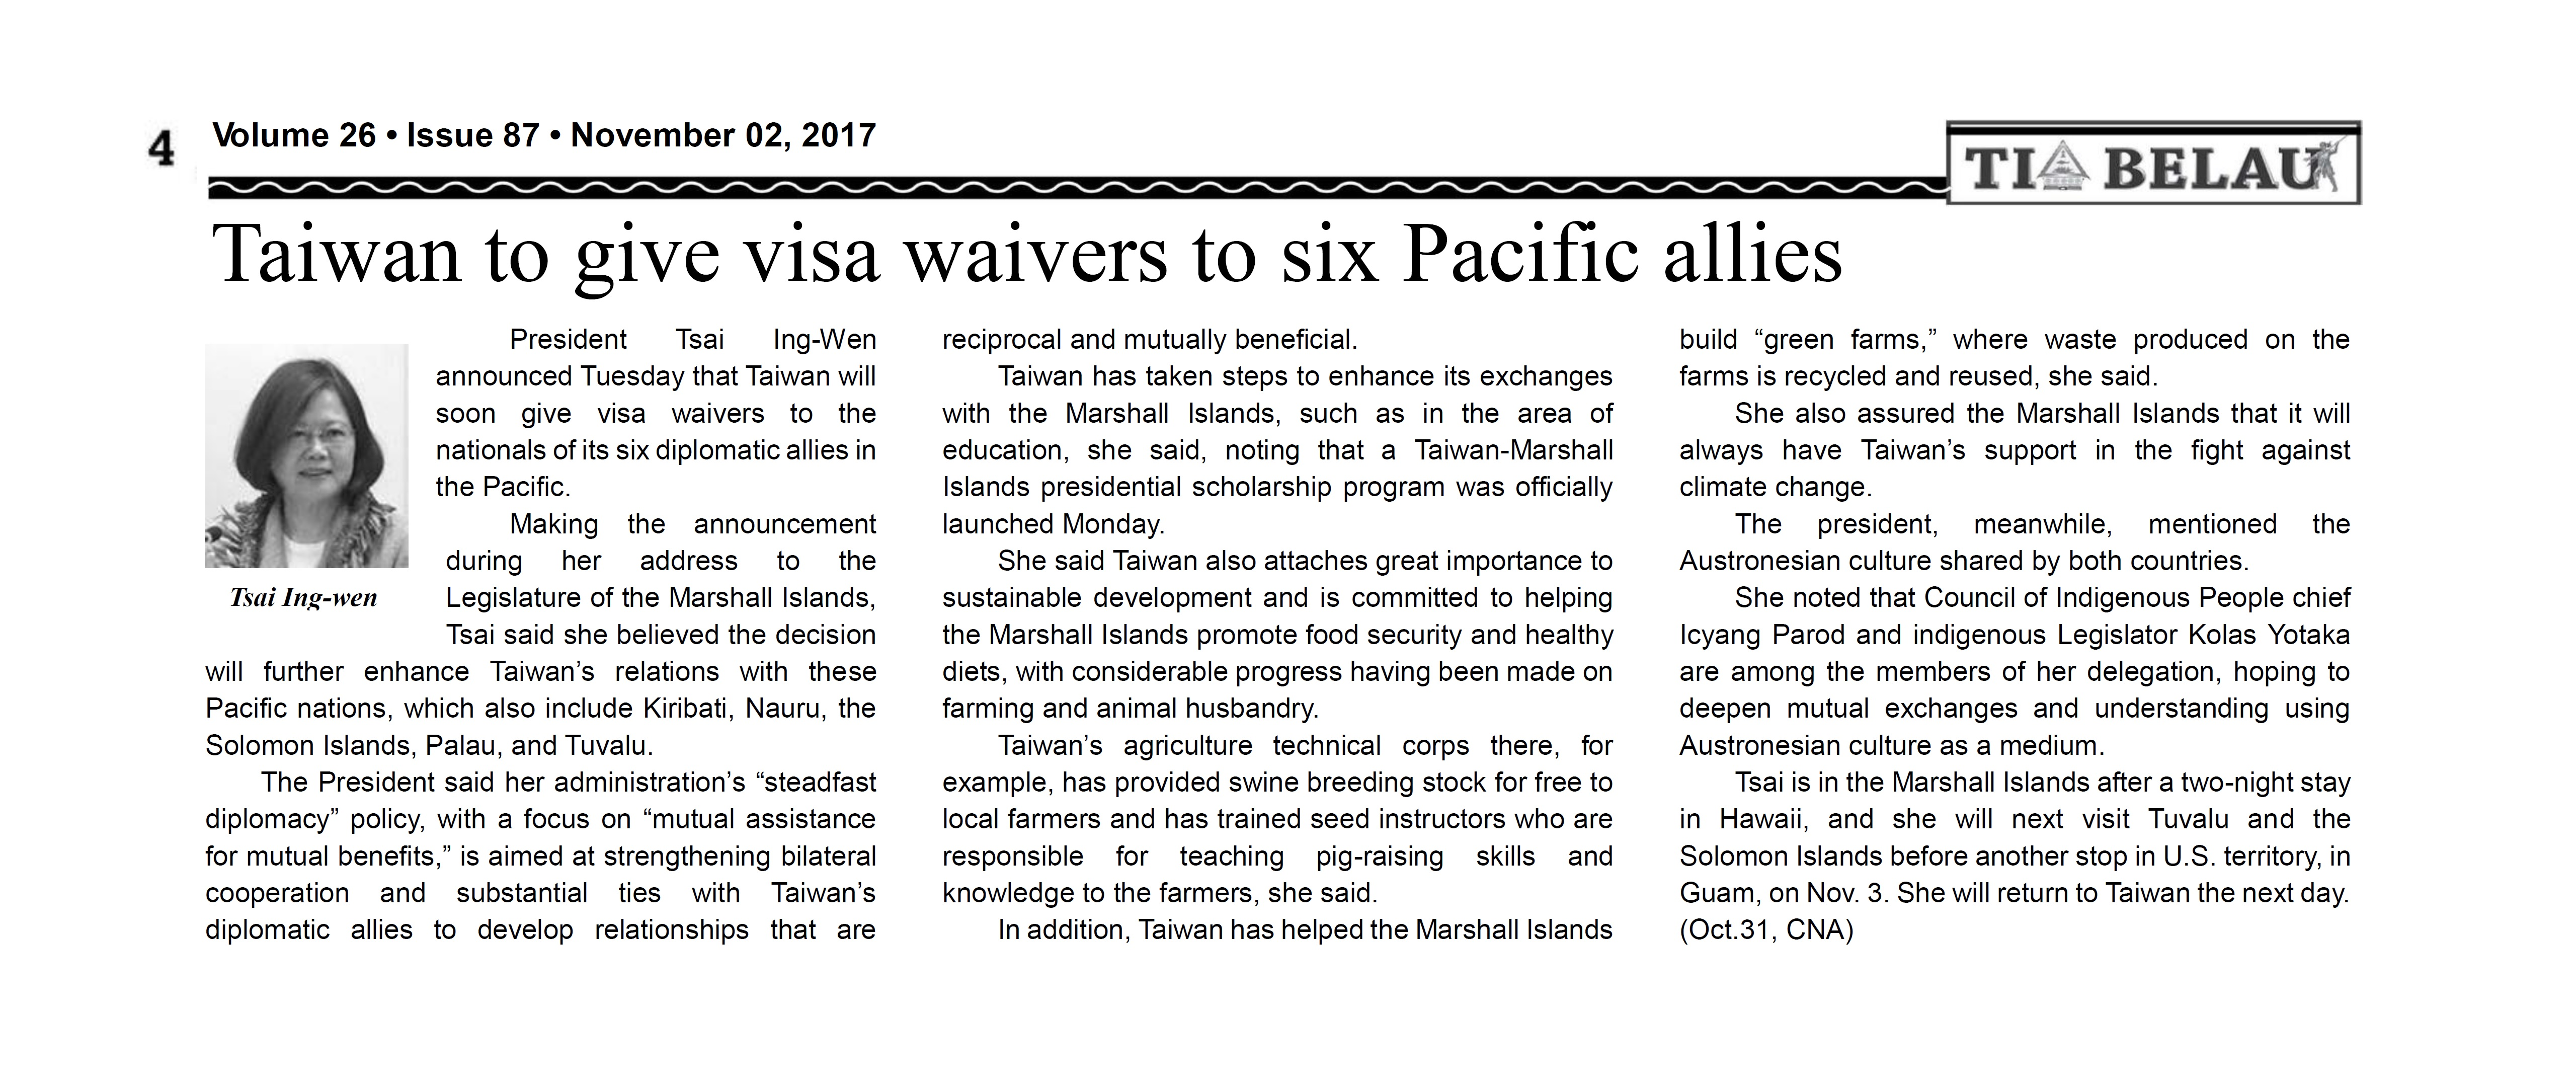 Taiwan to give visa waivers to six Pacific allies